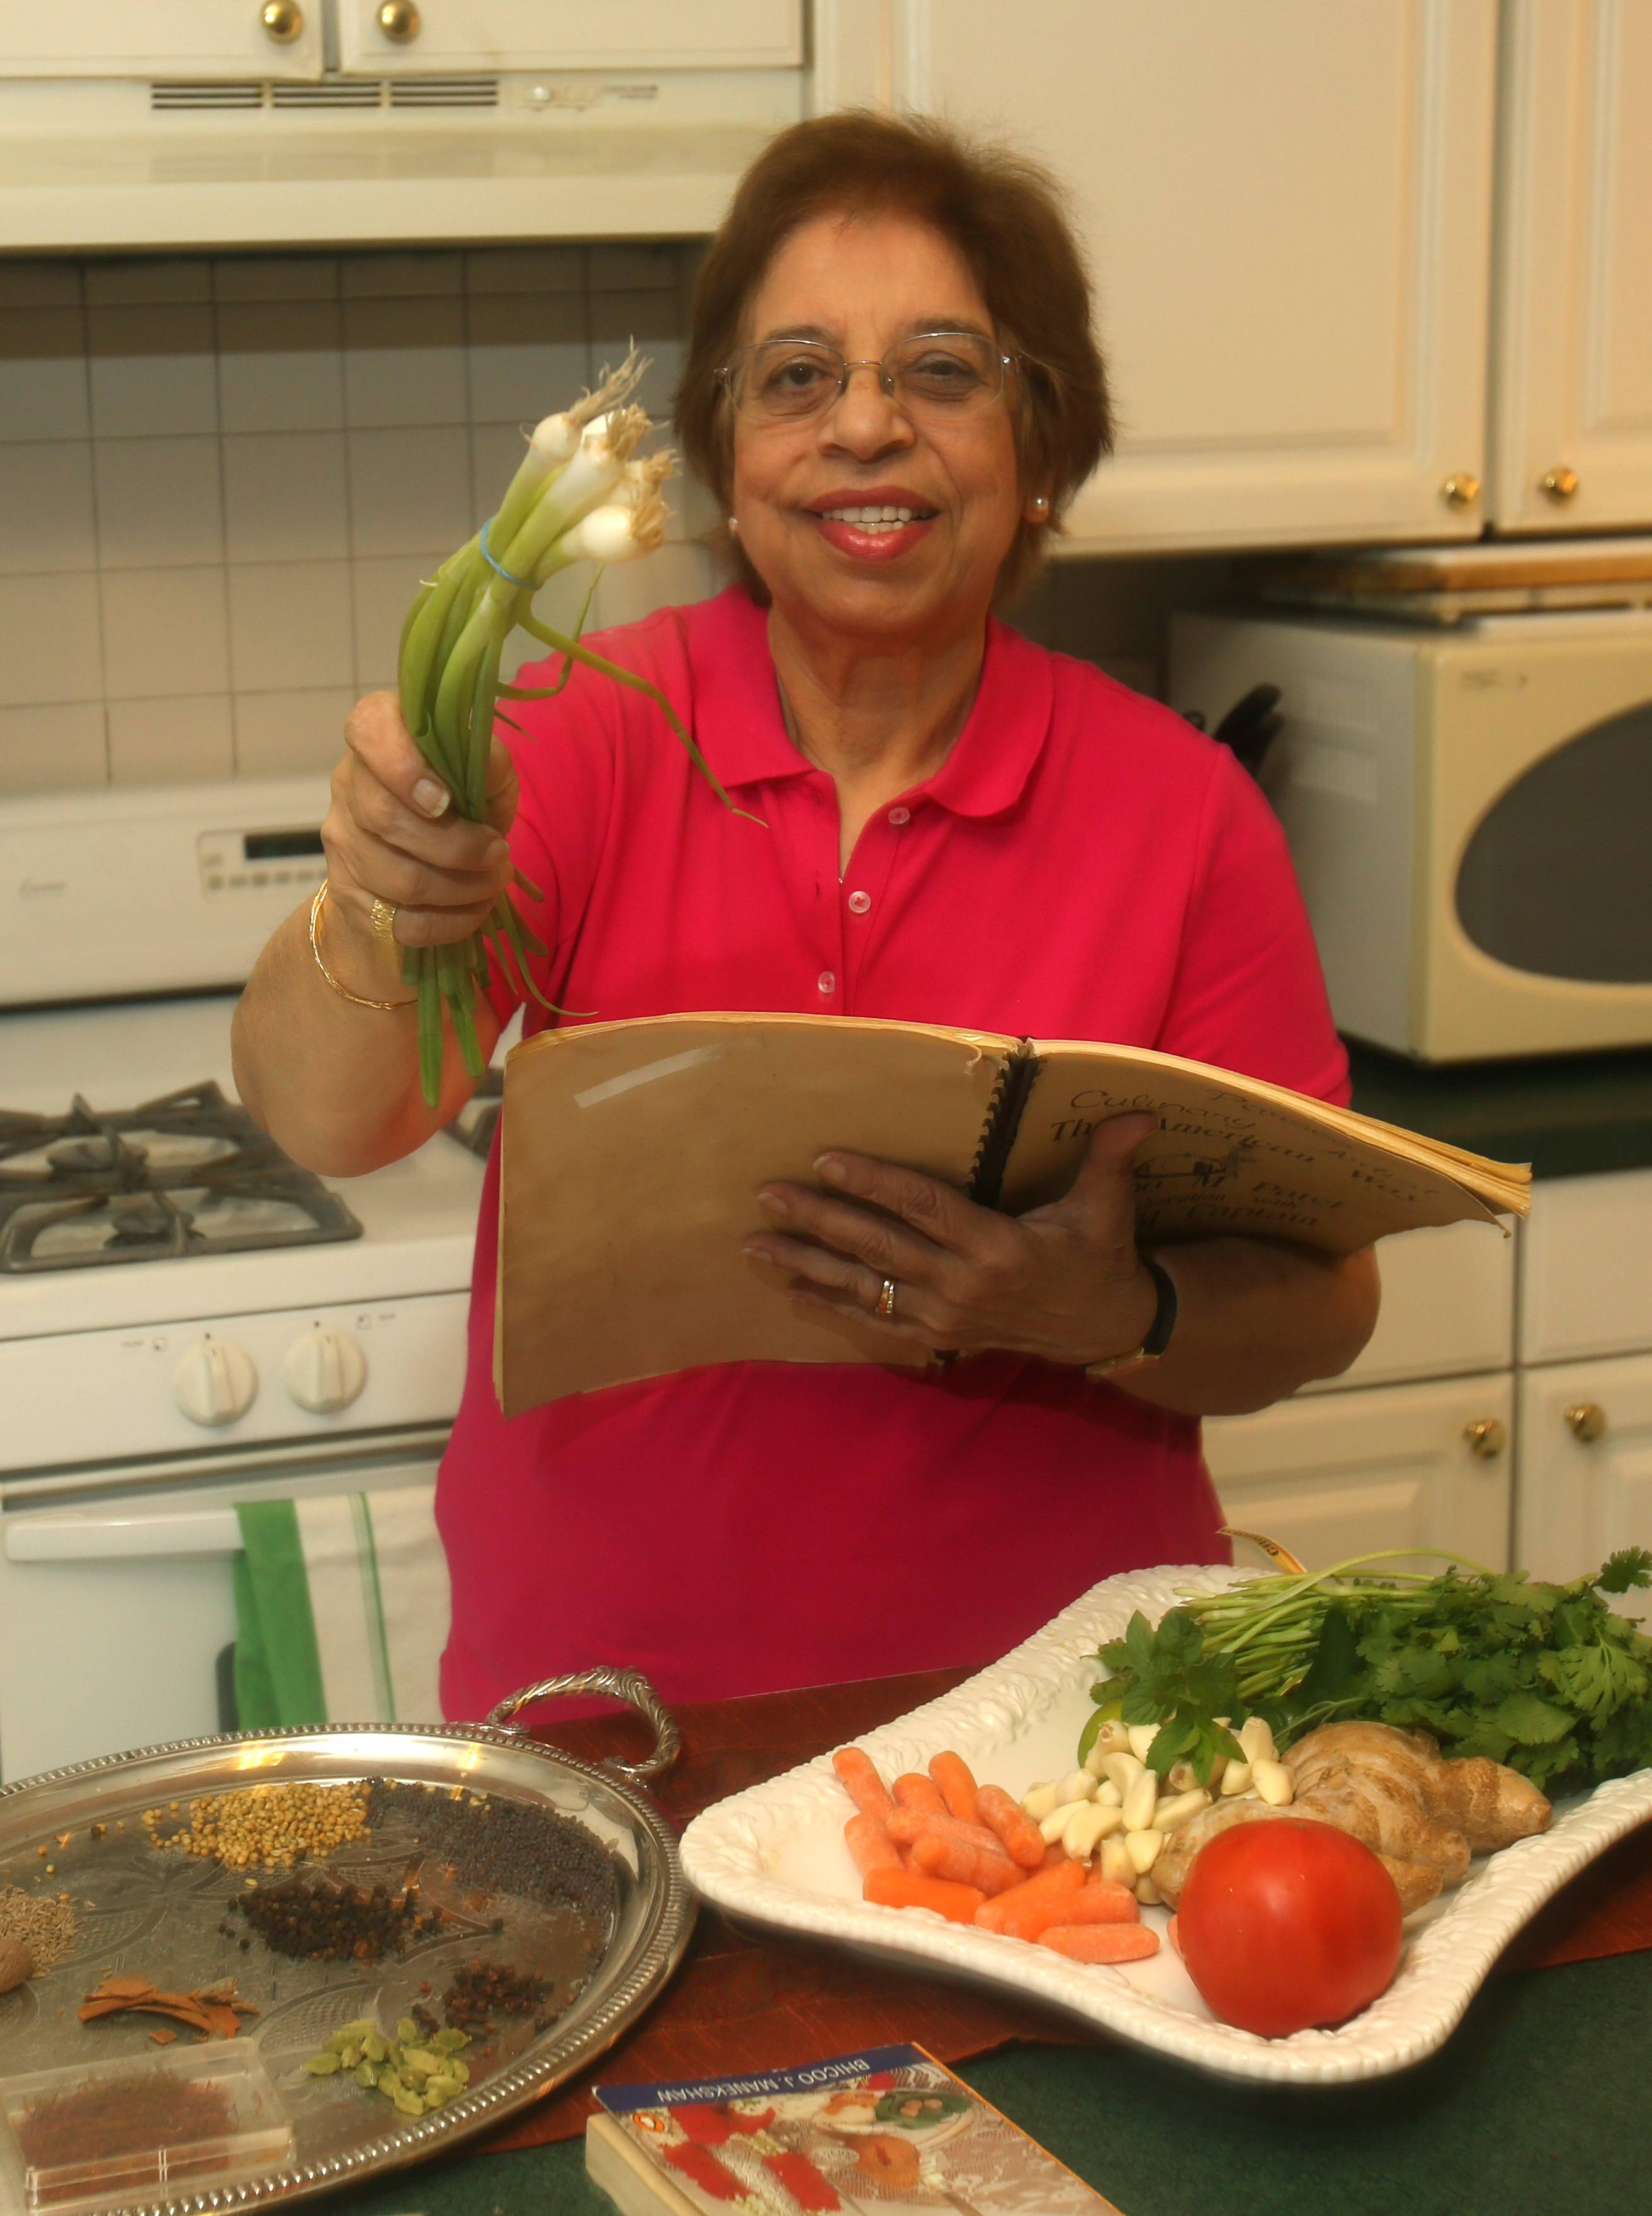 Aban Daboo of Aurora shows her favorite cooking ingredients, including fresh vegetables and spices, along with an old cookbook.